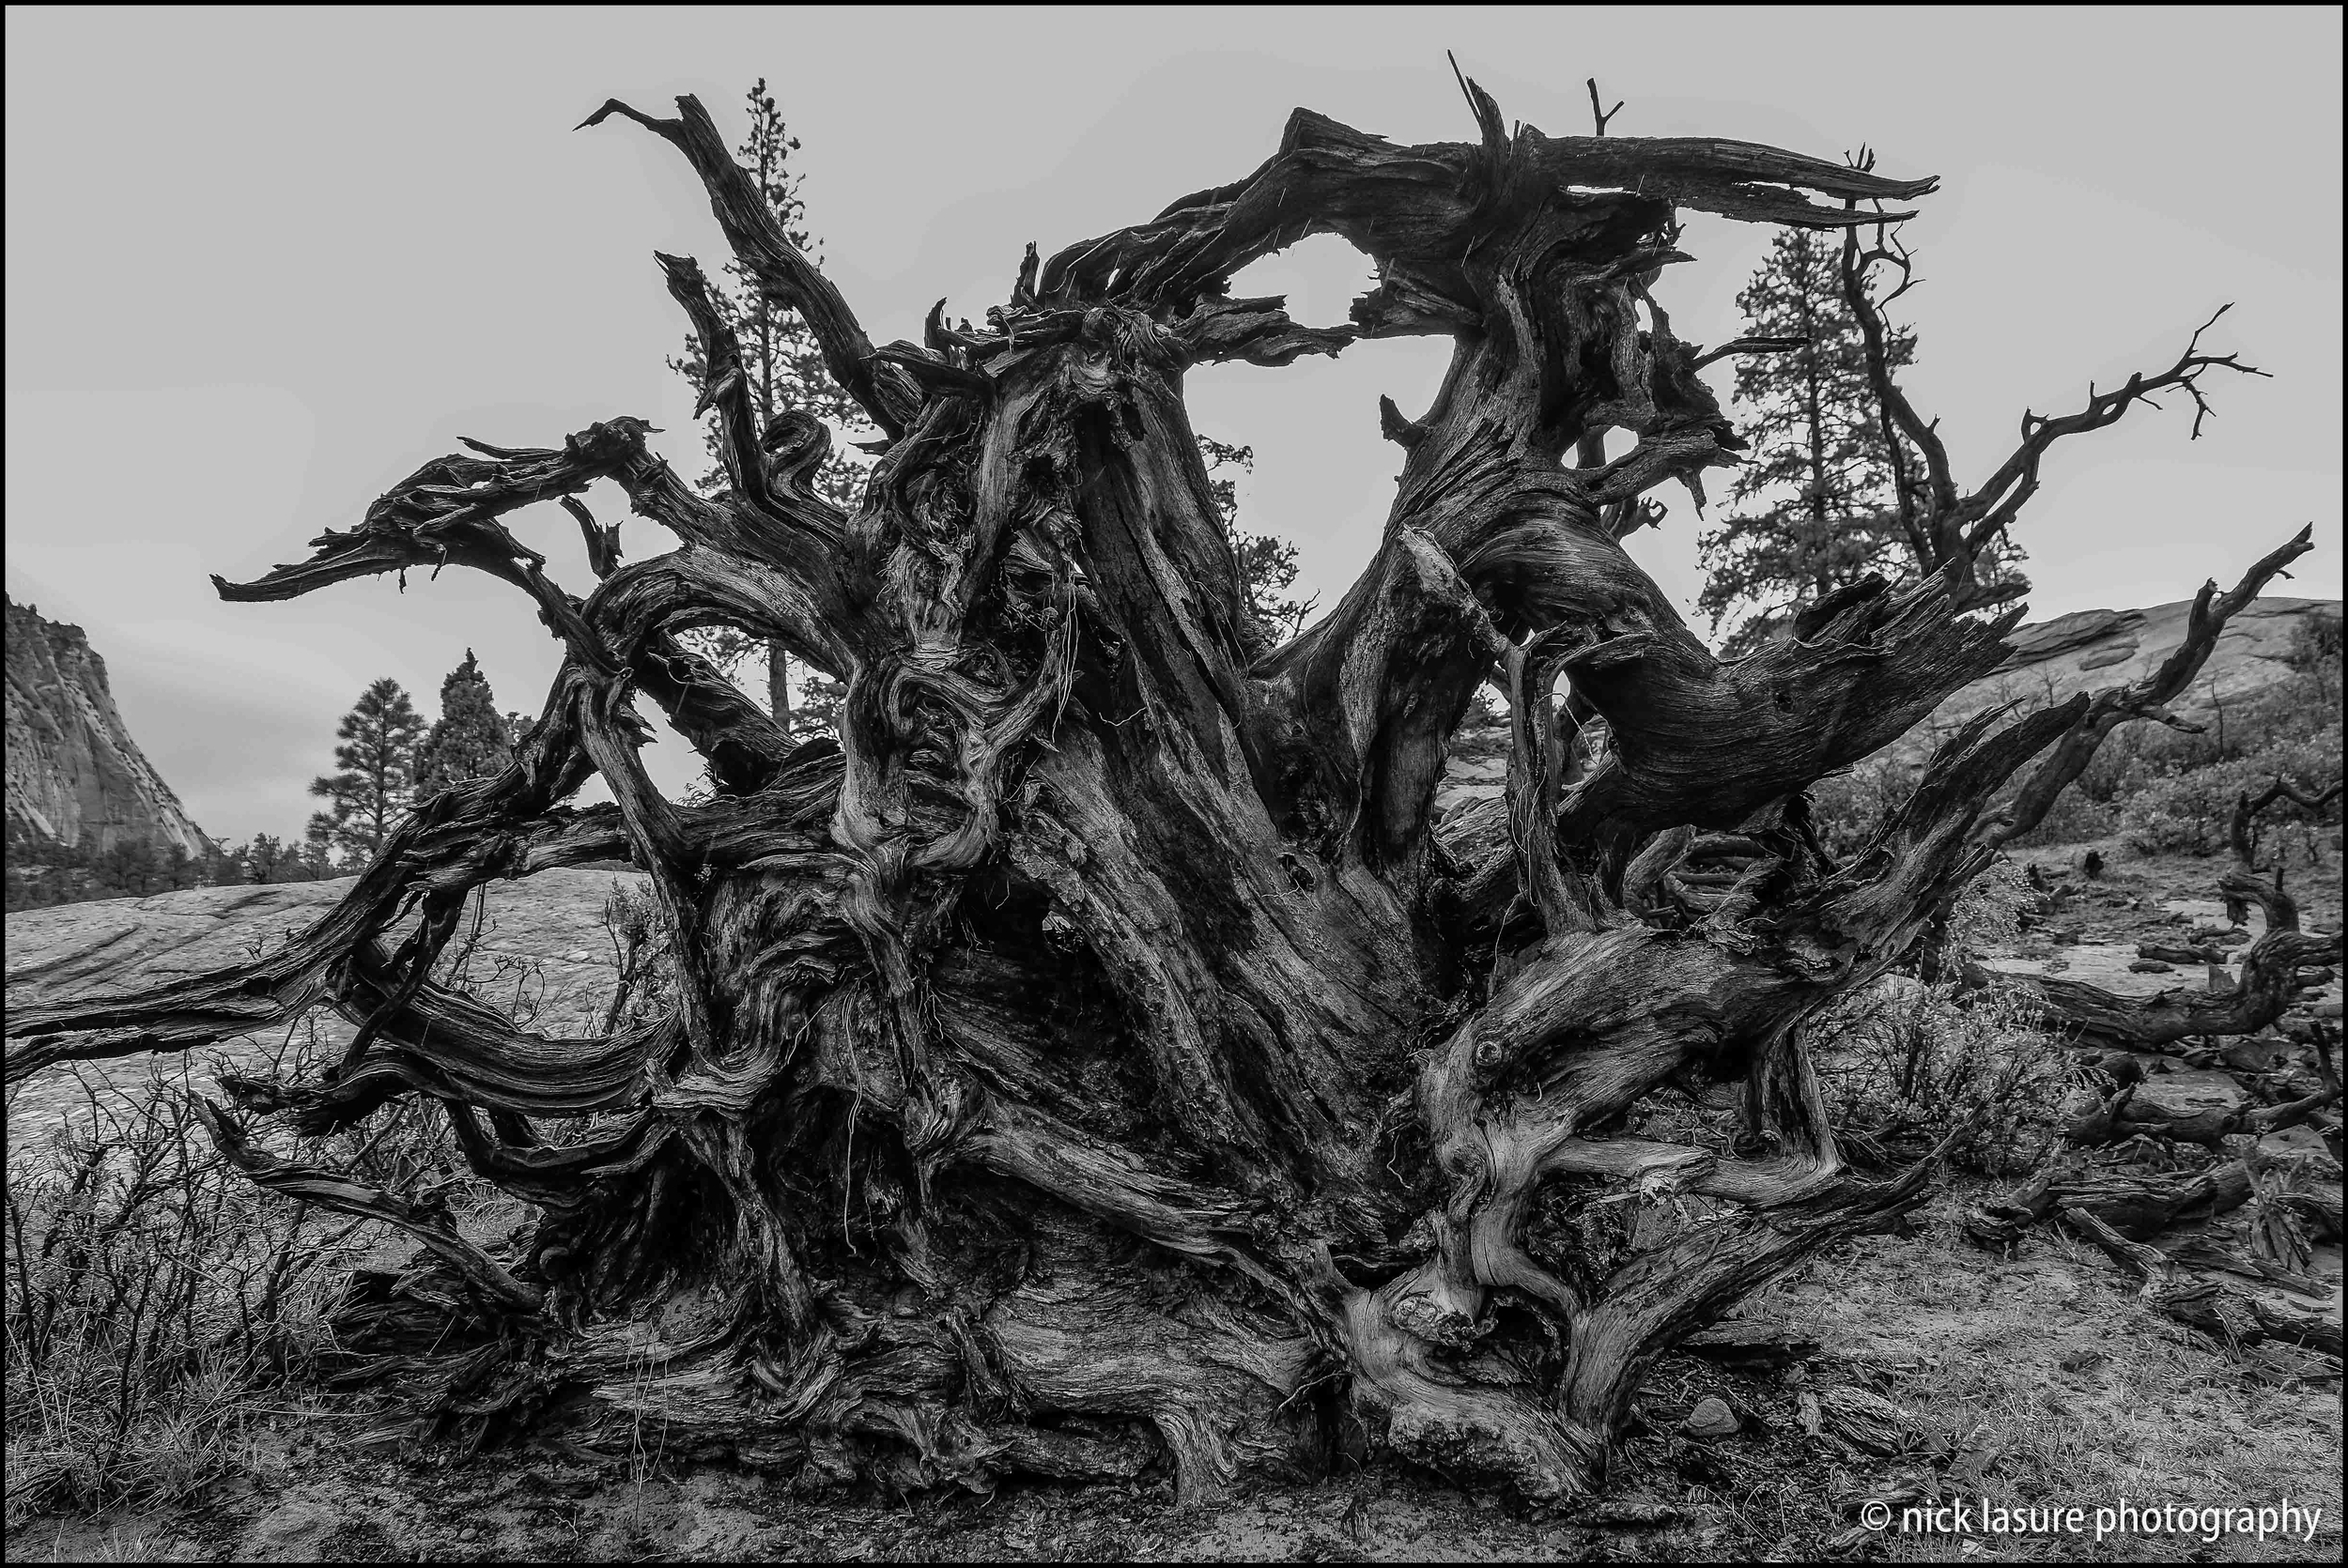 The roots of this very old fallen tree caught my eye - Fuji X-T1